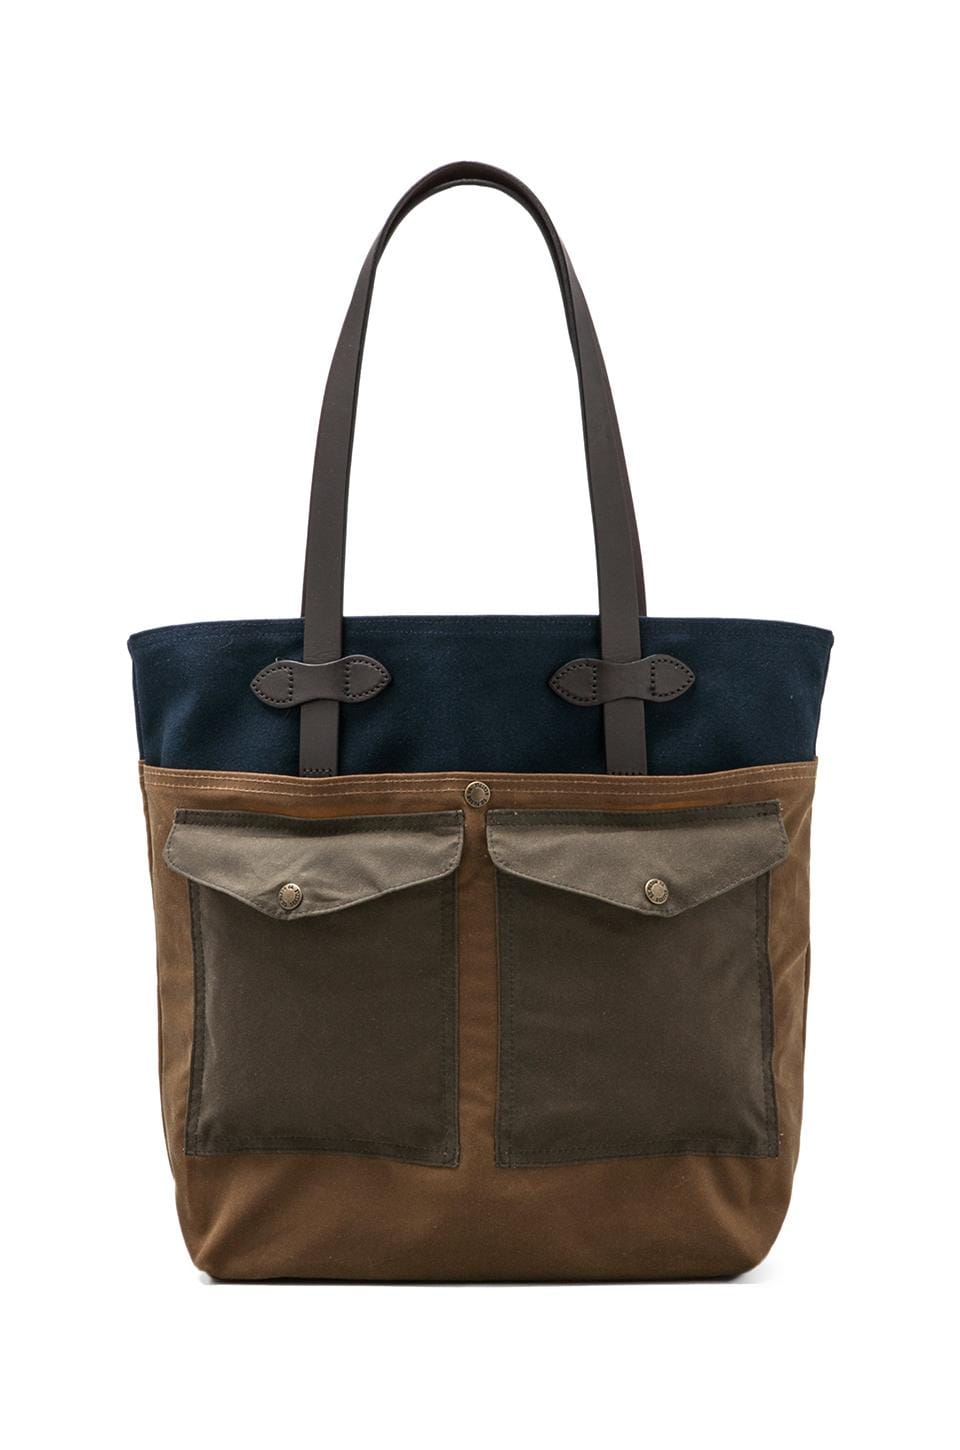 Filson Medium Tote w/ Pockets in Navy/ Dark Tan